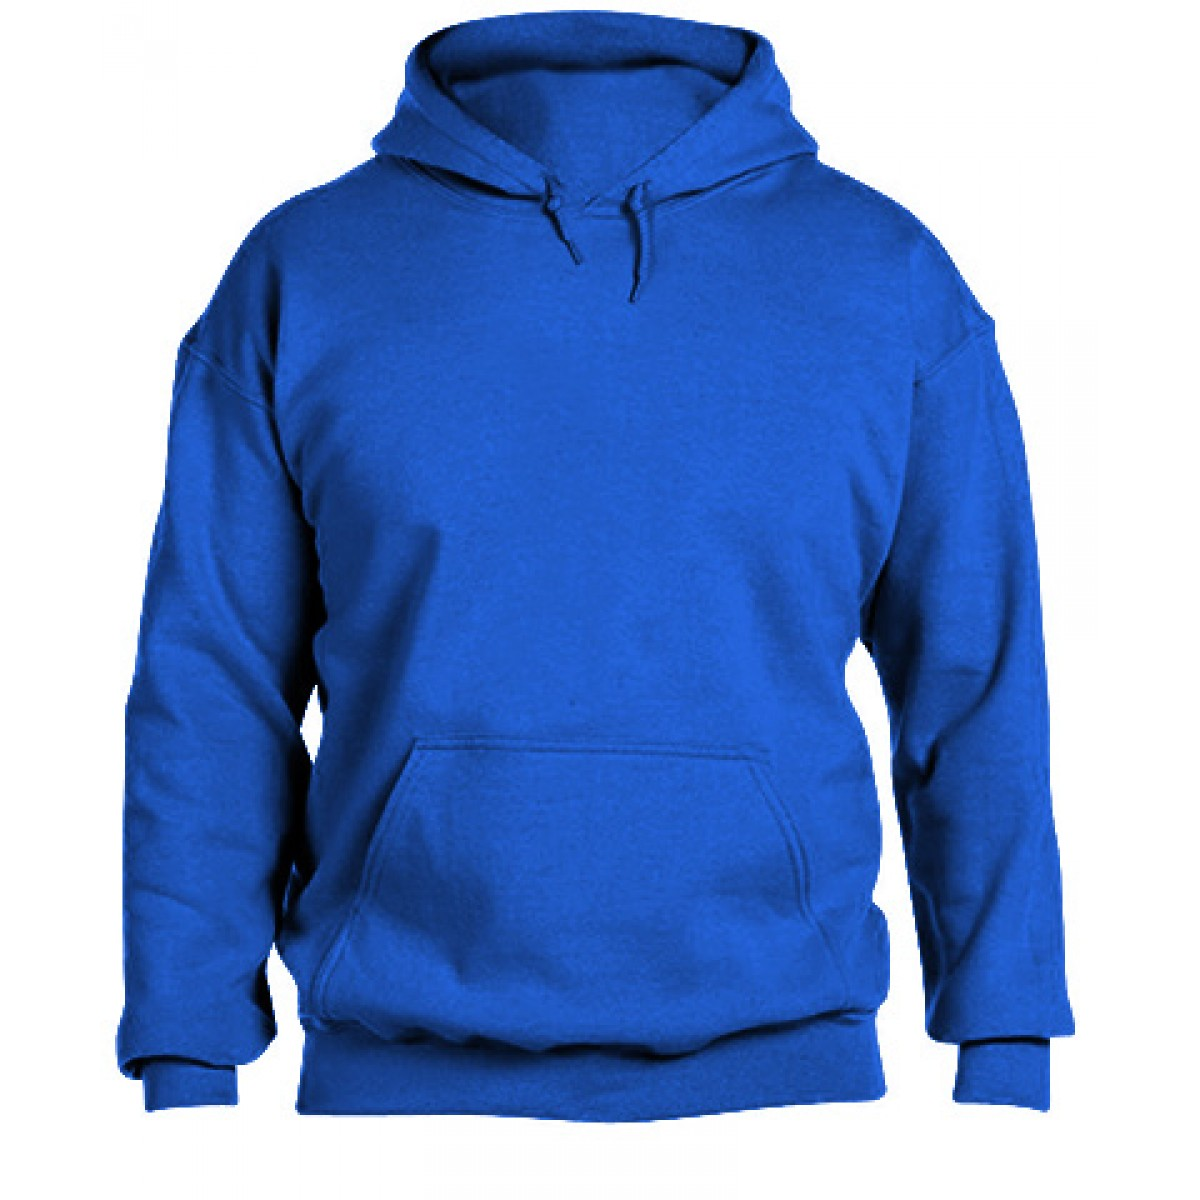 Hooded Sweatshirt 50/50 Heavy Blend-2XL